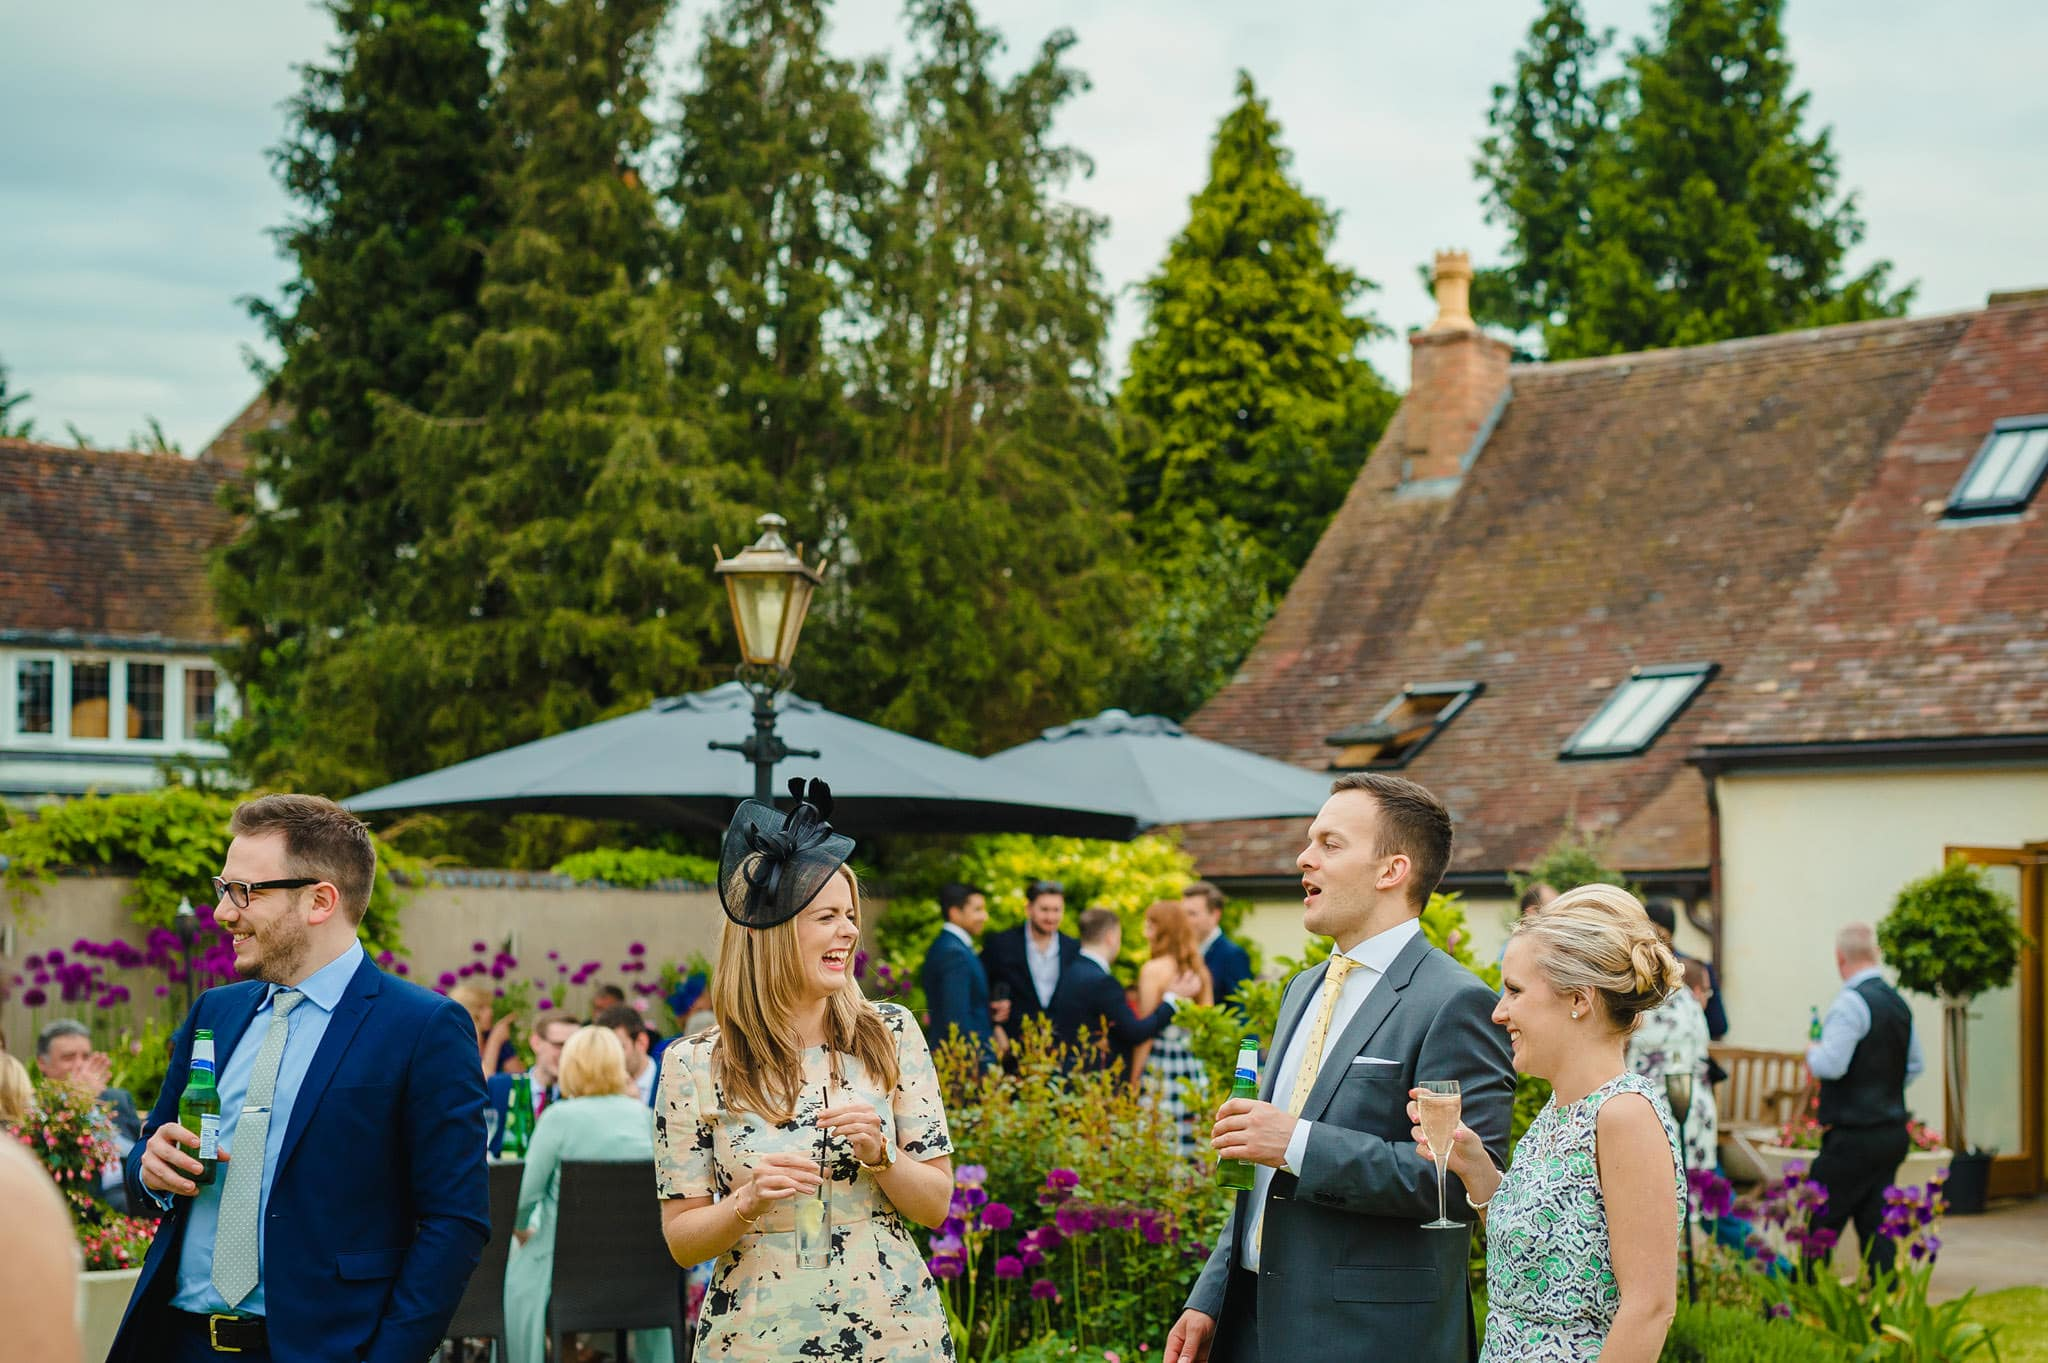 wedding at redhouse barn 204 - Wedding at Redhouse Barn in Stoke Prior, Worcestershire